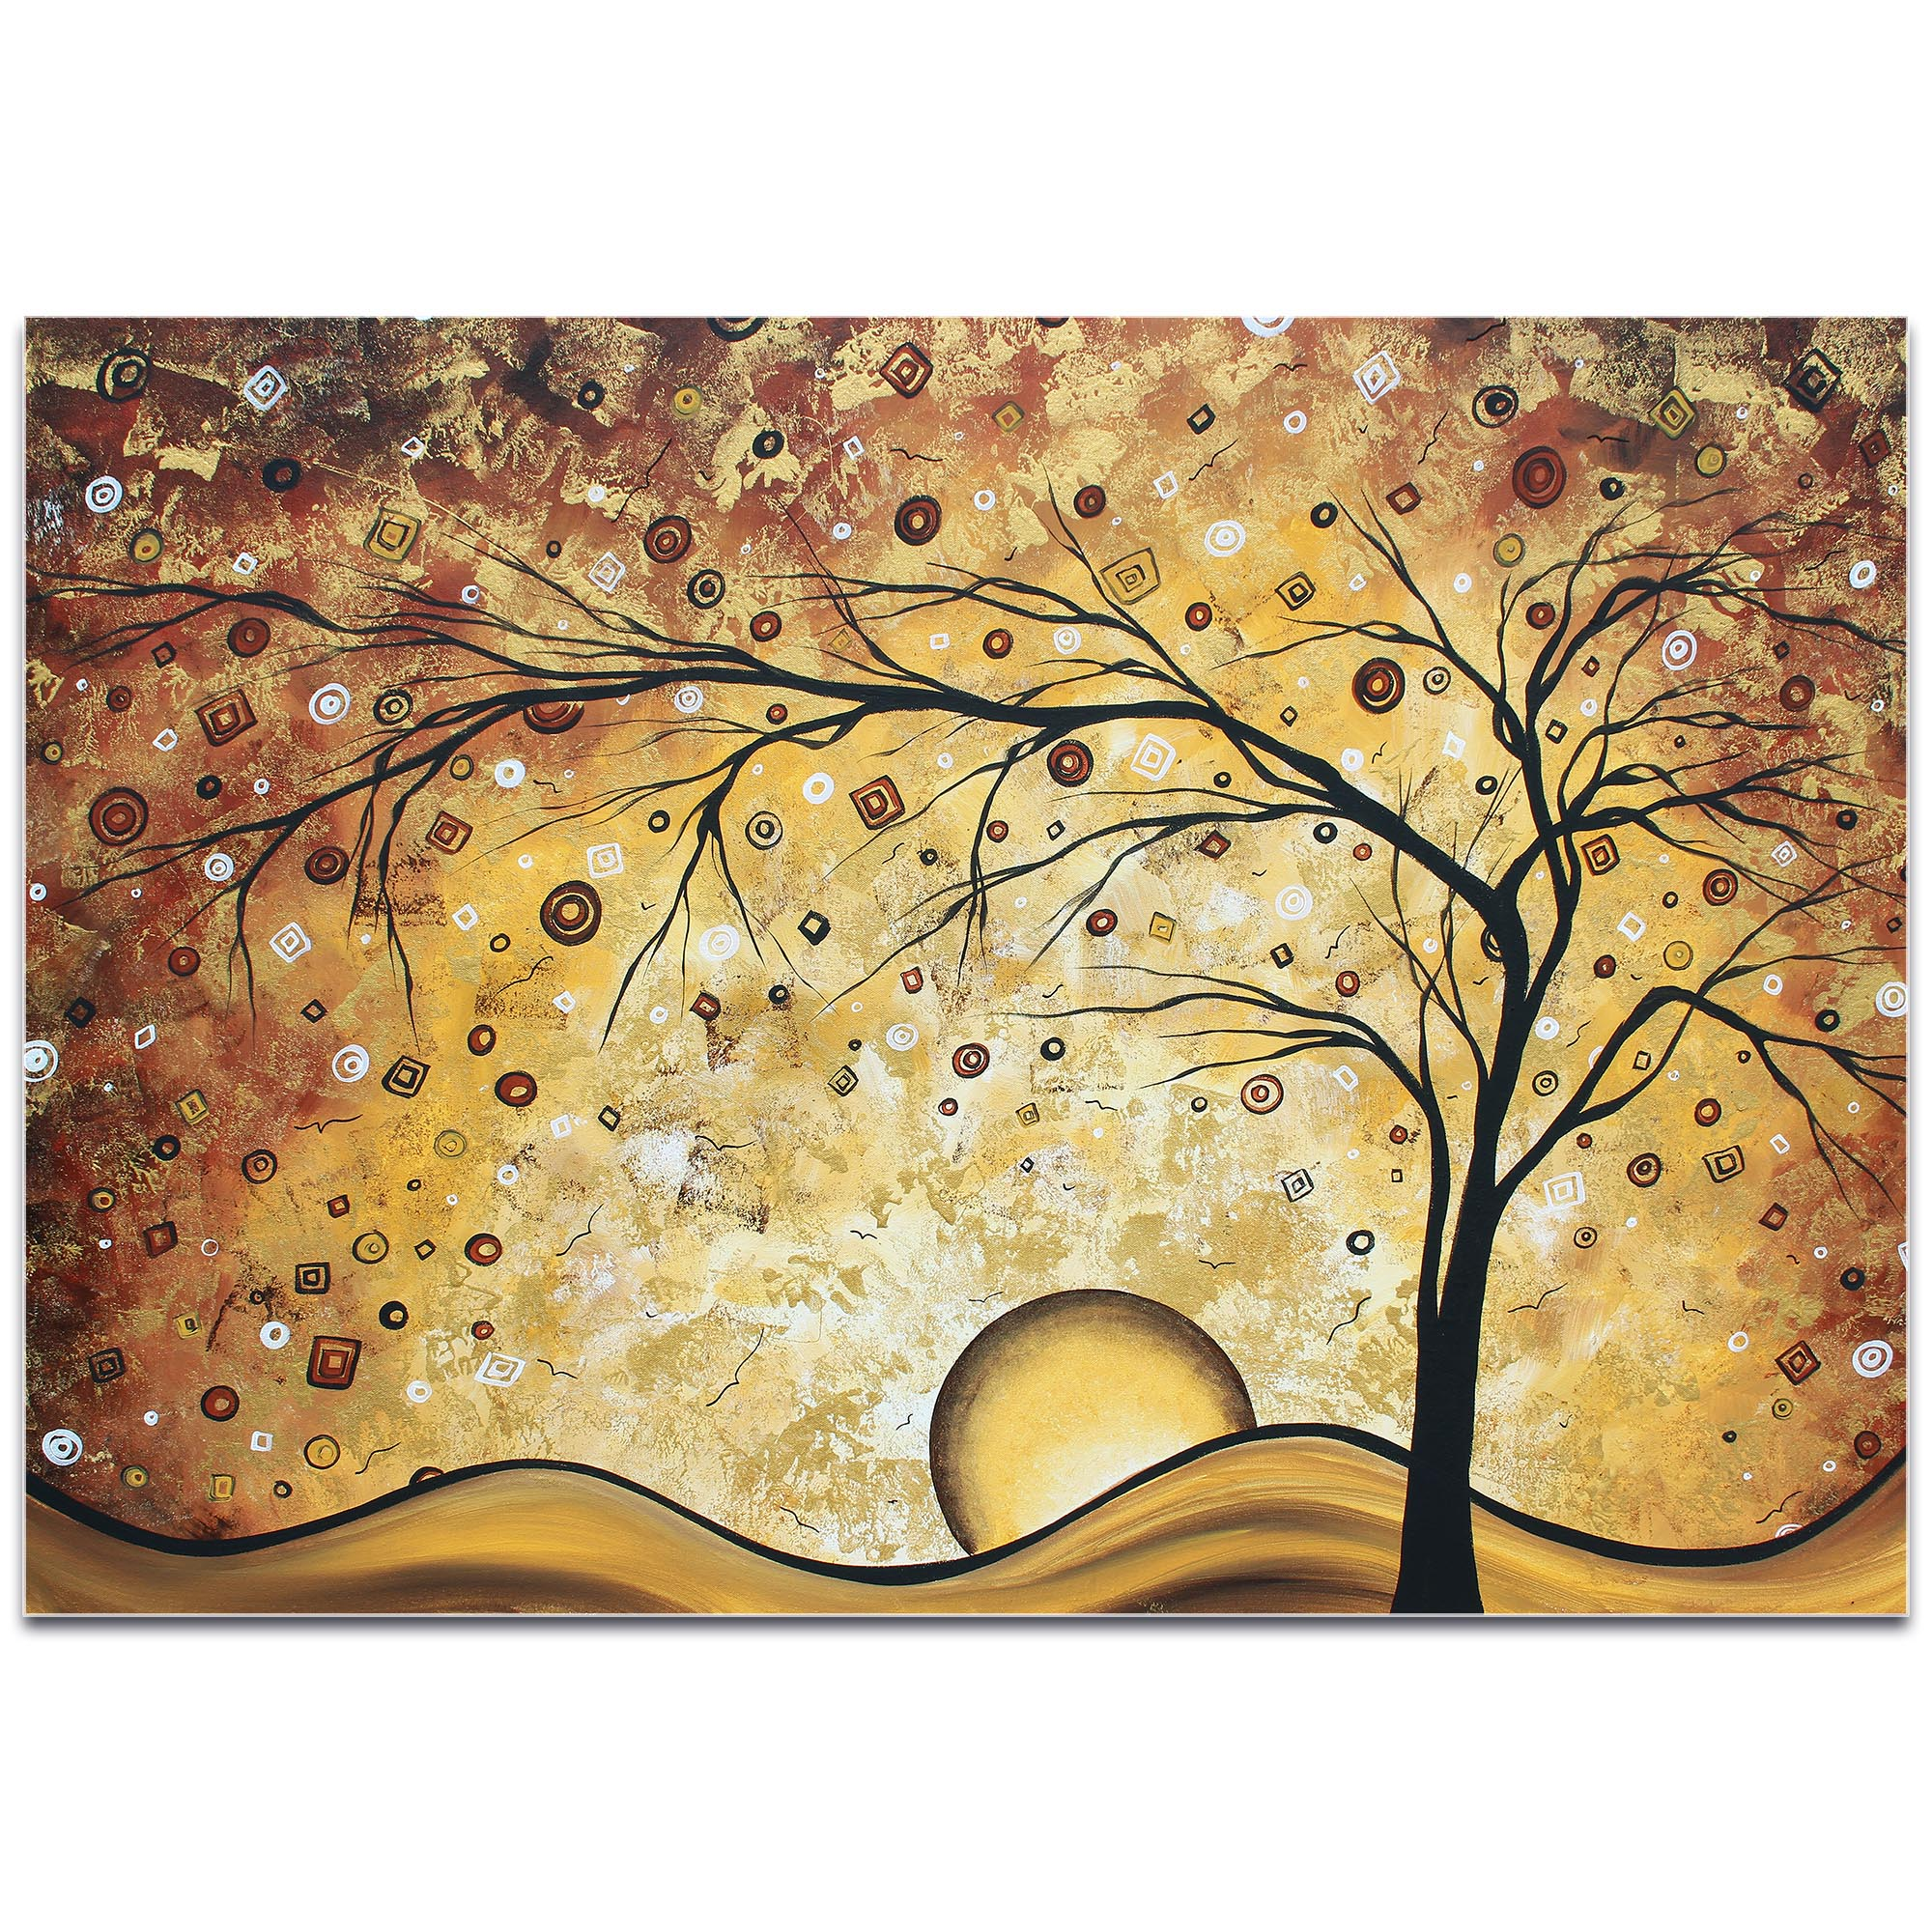 Landscape Painting 'Golden Rhapsody' - Abstract Tree Art on Metal or Acrylic - Image 2